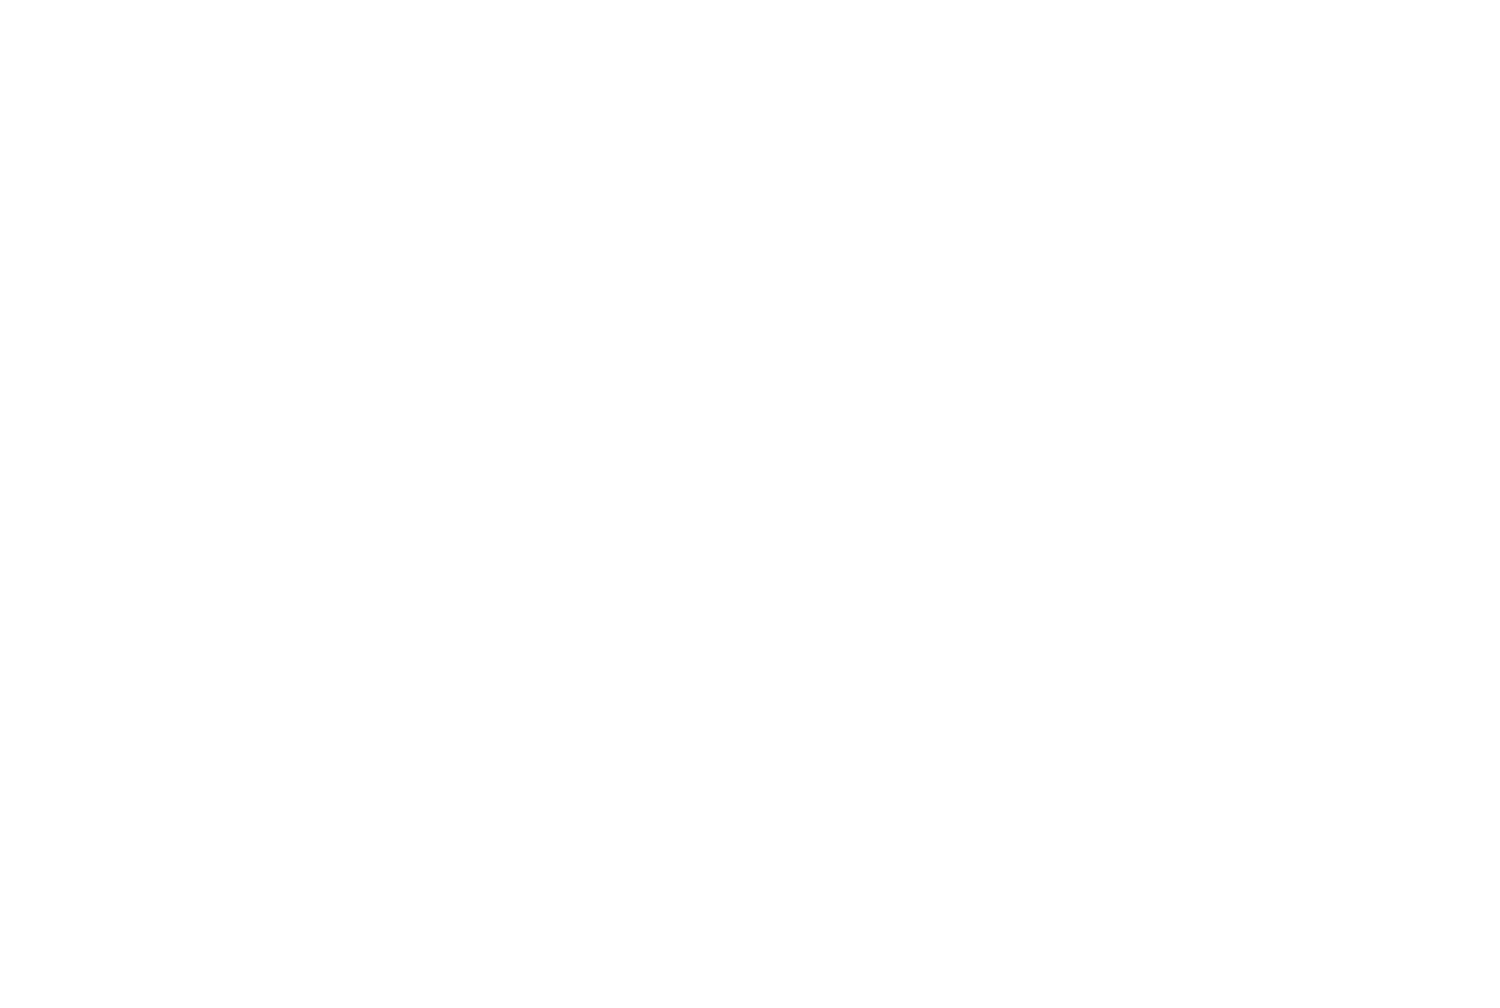 Yoga With Laura Jane